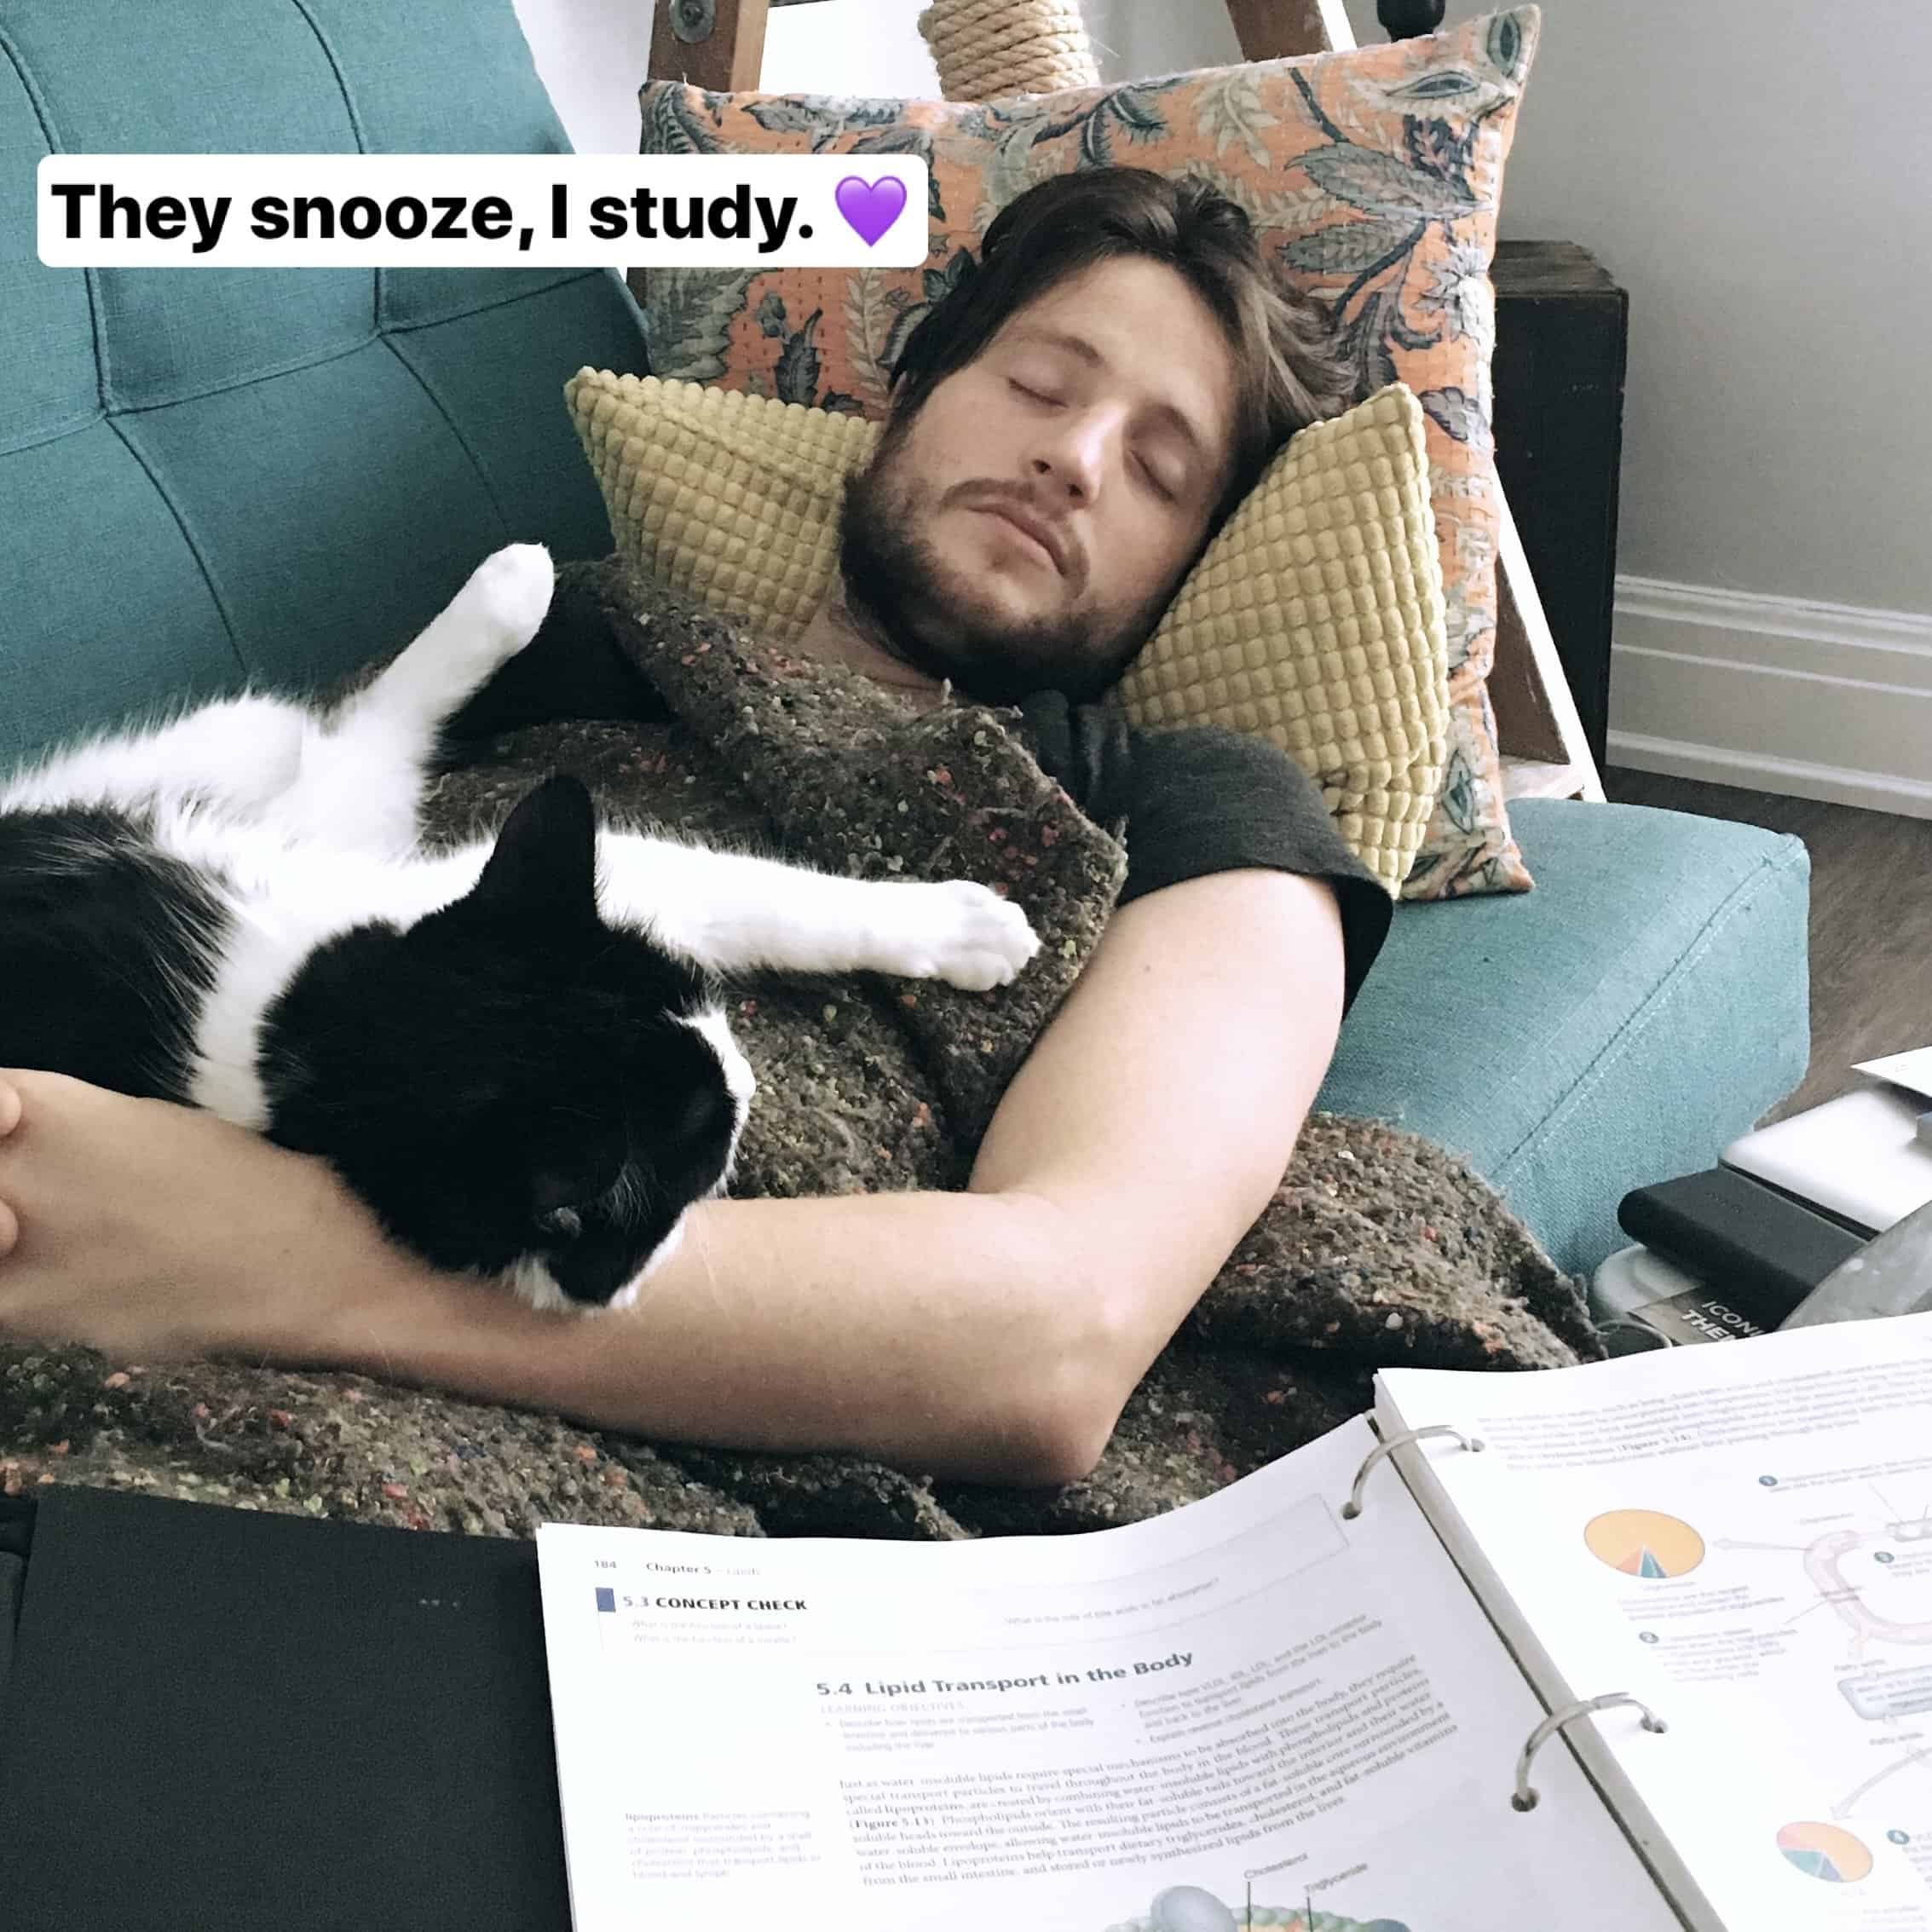 Man and a cat napping on a couch.